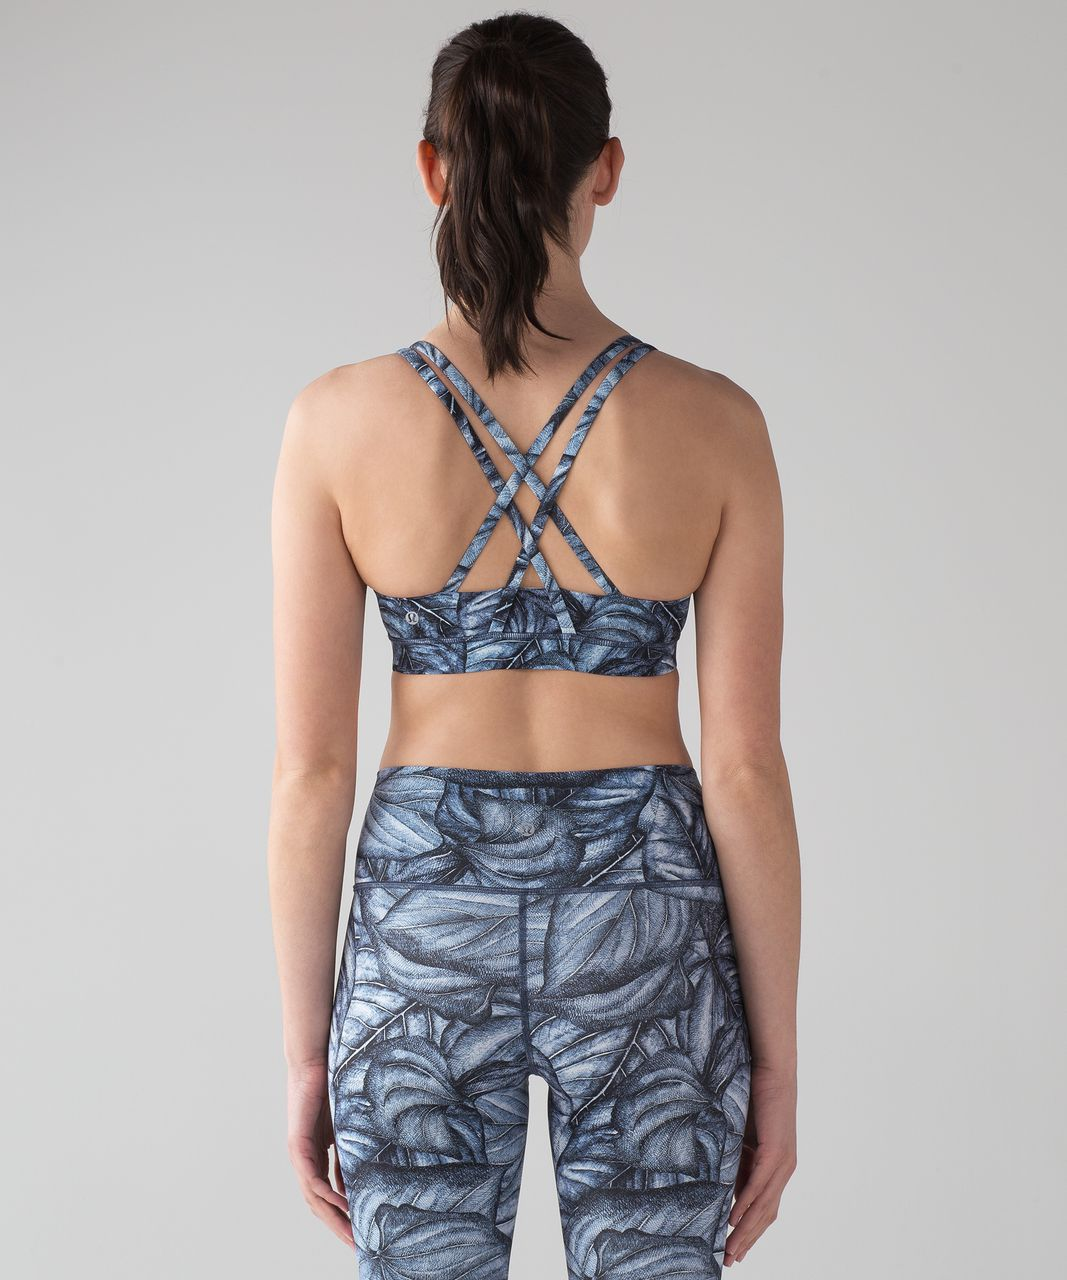 Lululemon Energy Bra (Nulux) - Mini Concrete Jungle Alpine White Multi